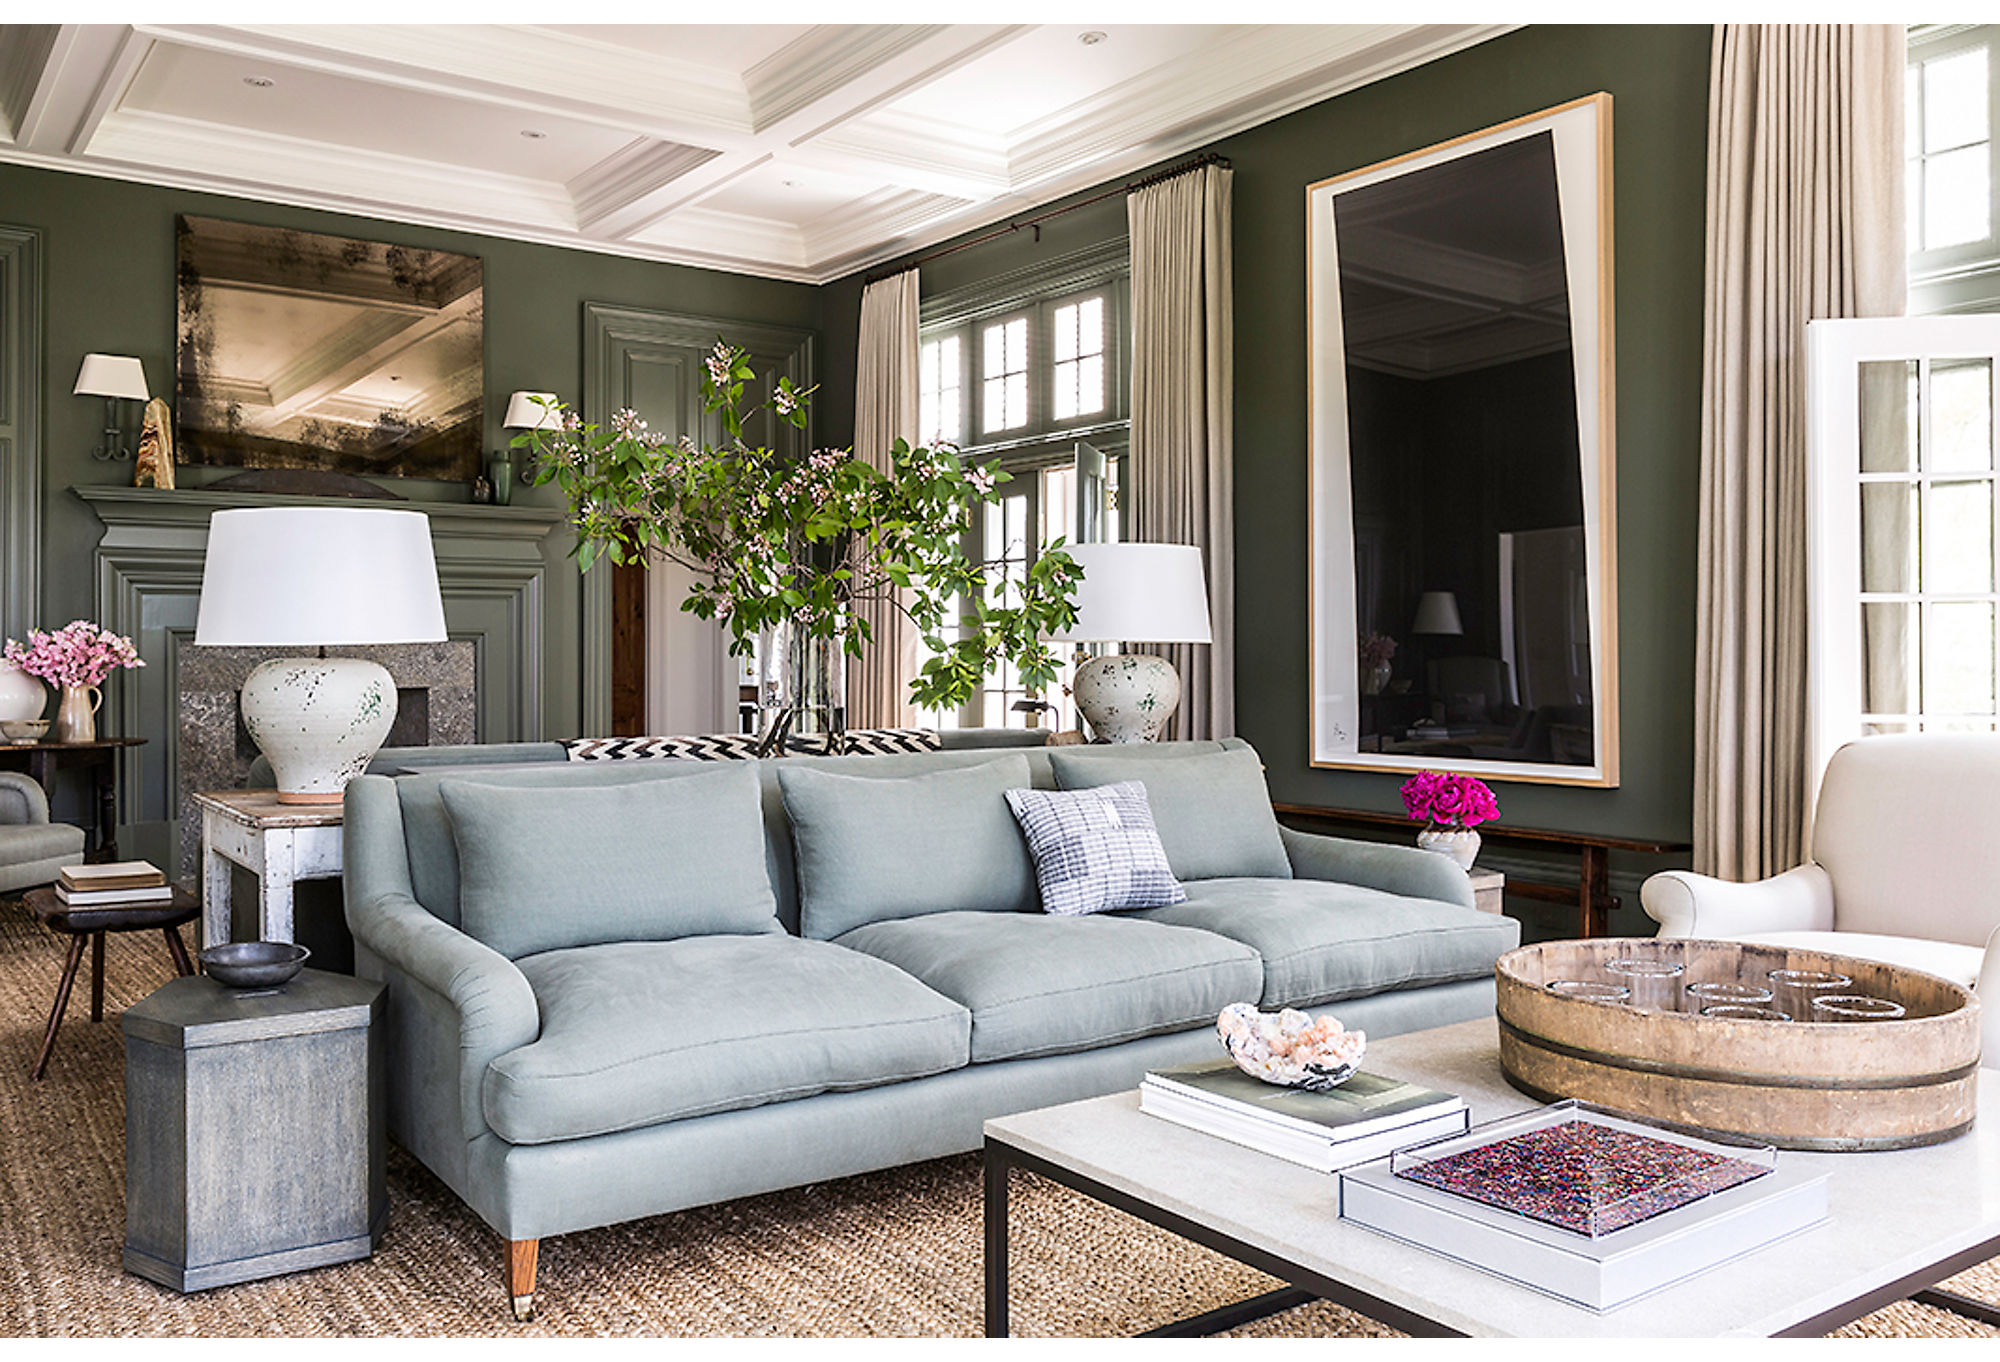 Designer Mark Cunningham created two distinct zones in this Connecticut home by placing sofas back-to-back to define separate sitting areas. Photo by Lesley Unruh.